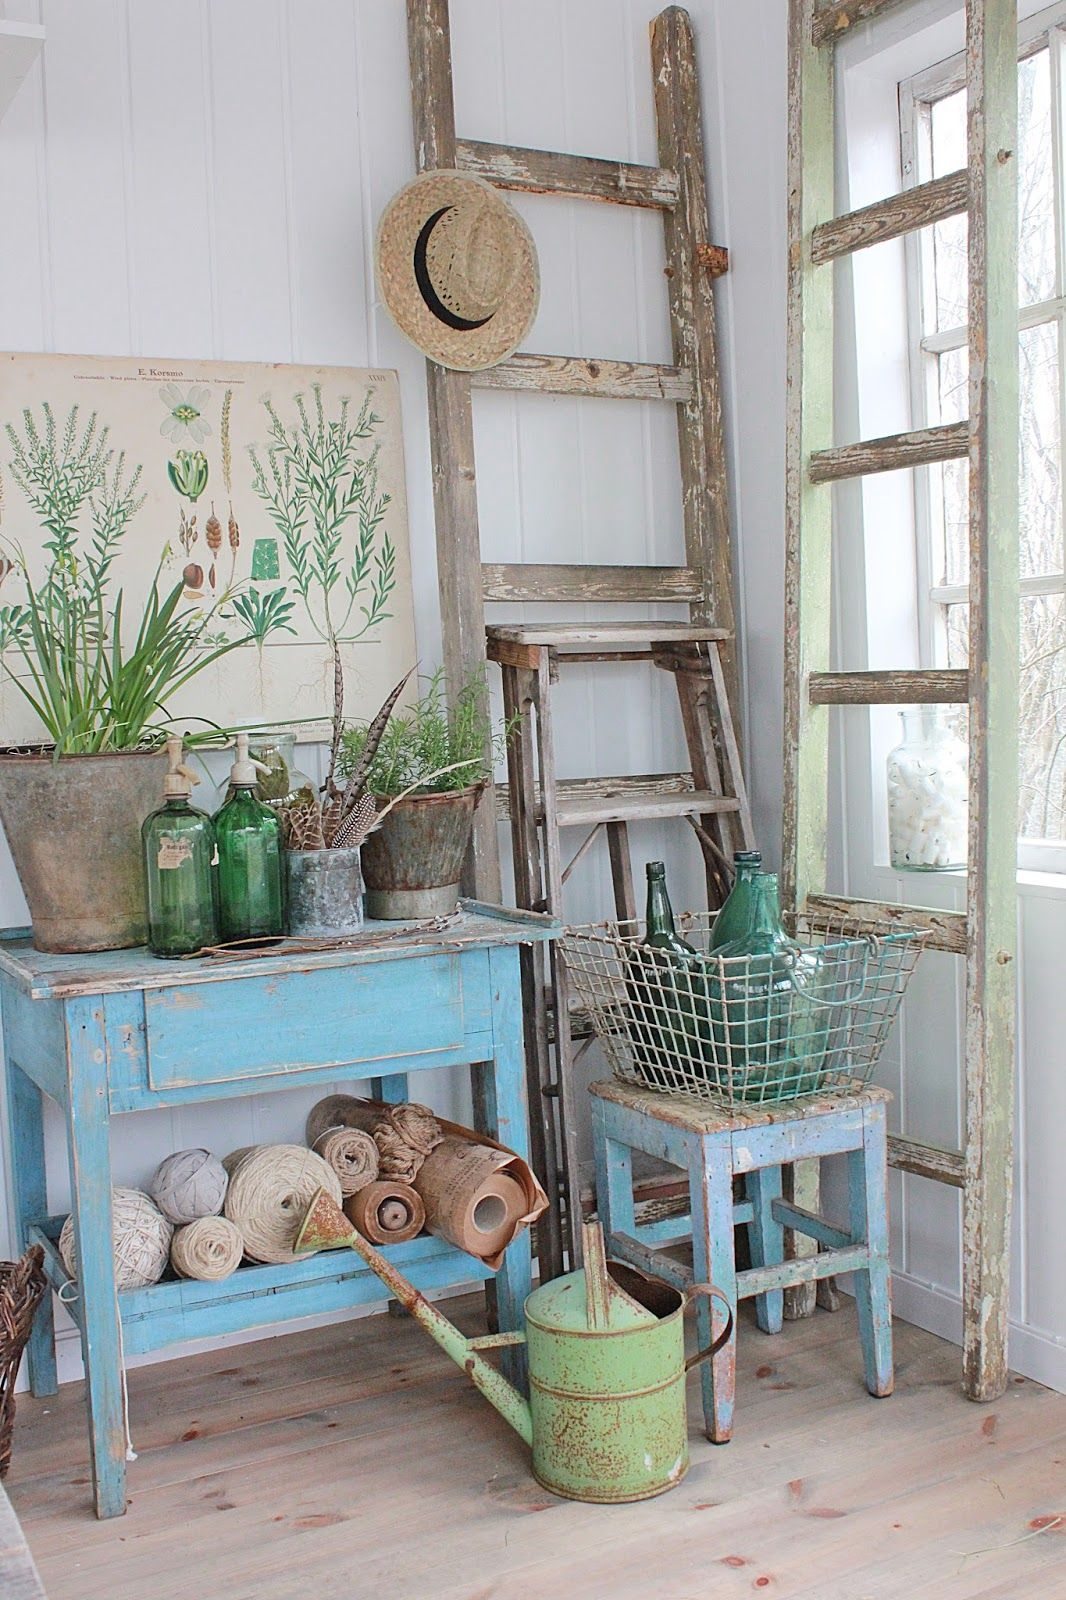 Rustic corner with ladders, painted stool, table, watering can, basket, pots and bottles in a potting shed.